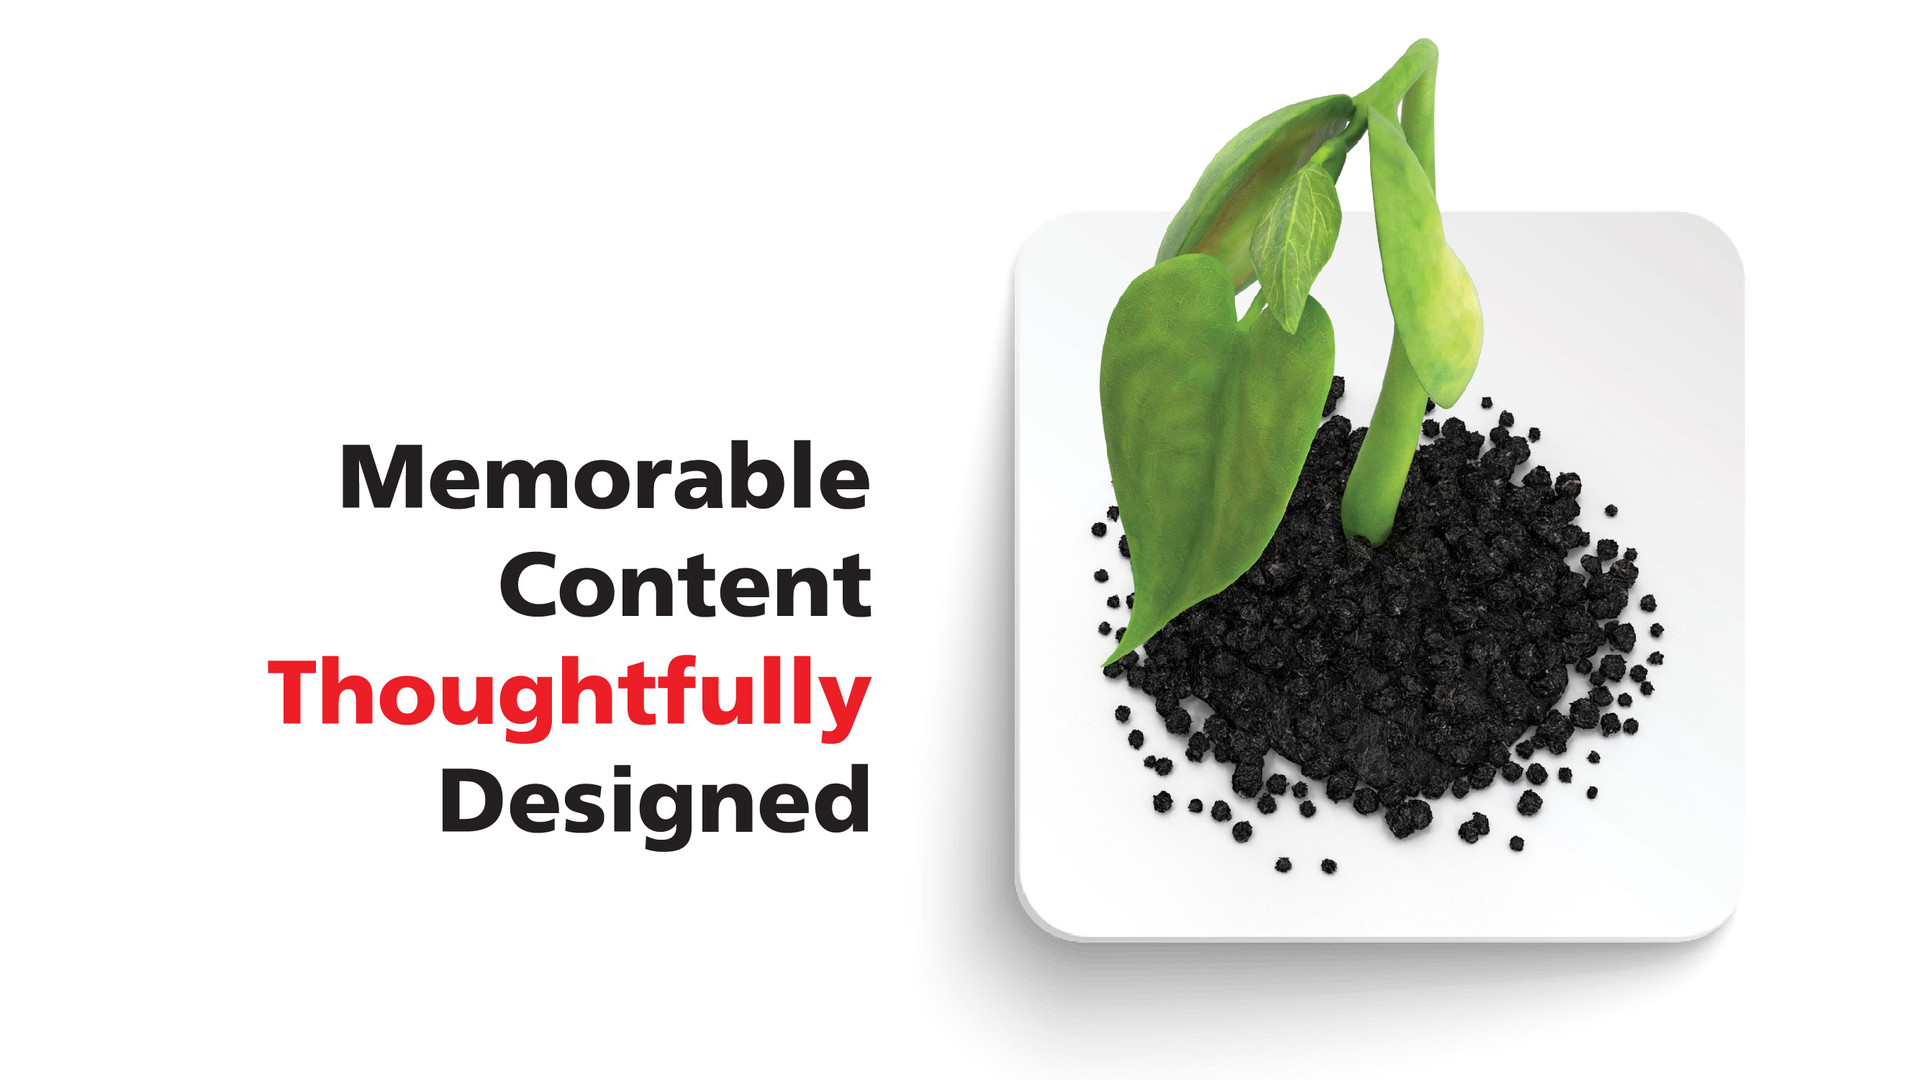 Memorable content thoughtfully designed